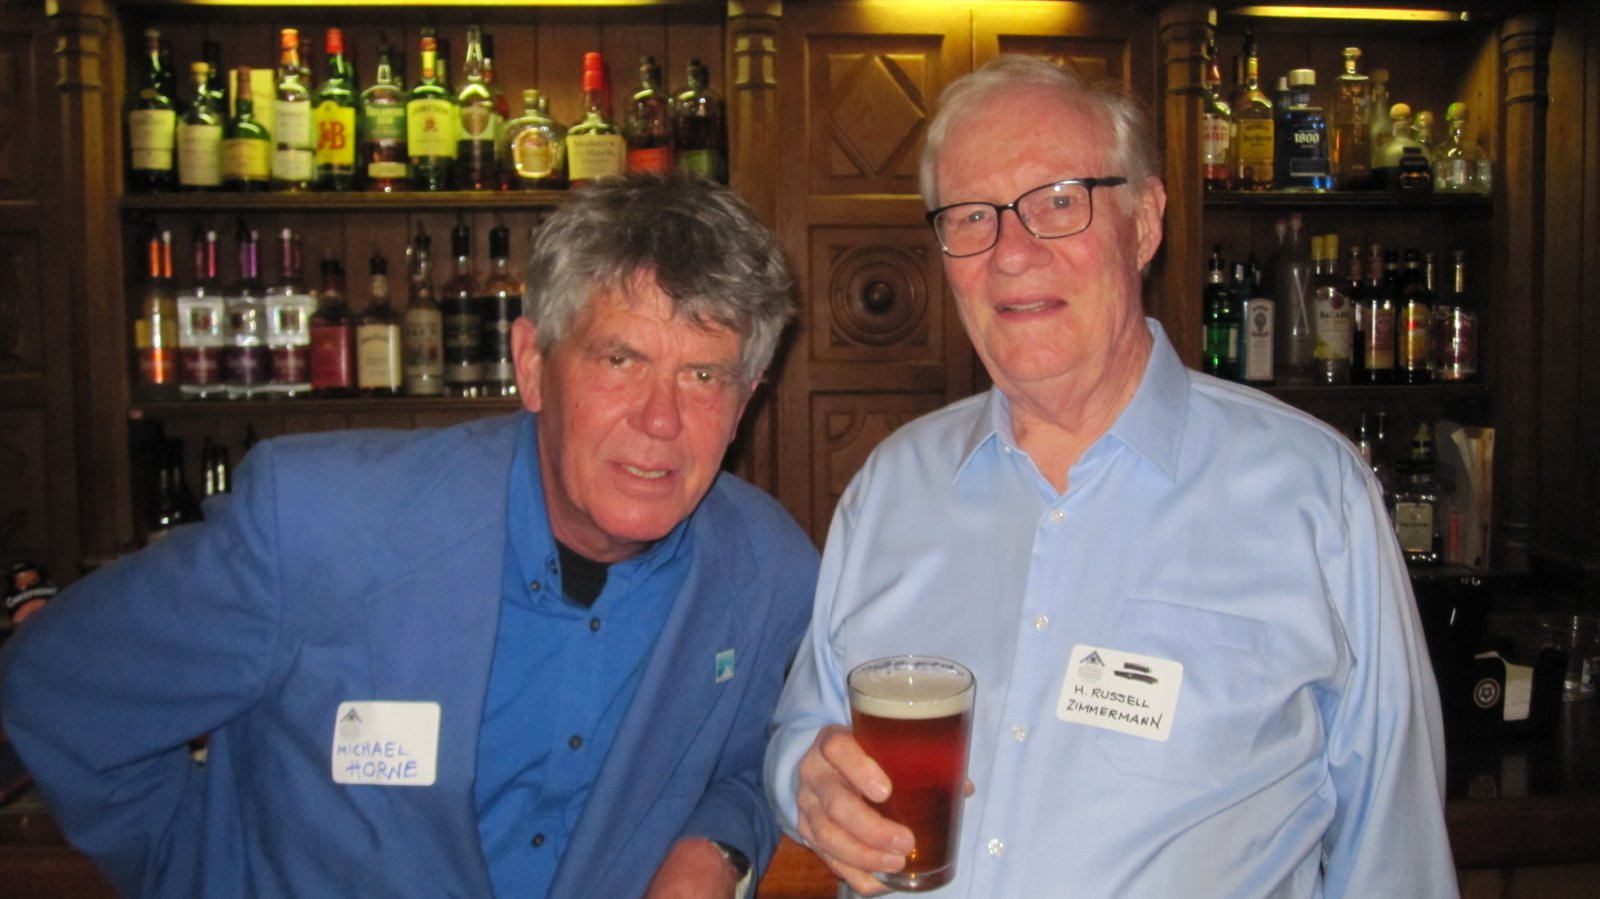 Michael Horne and H. Russell Zimmermann